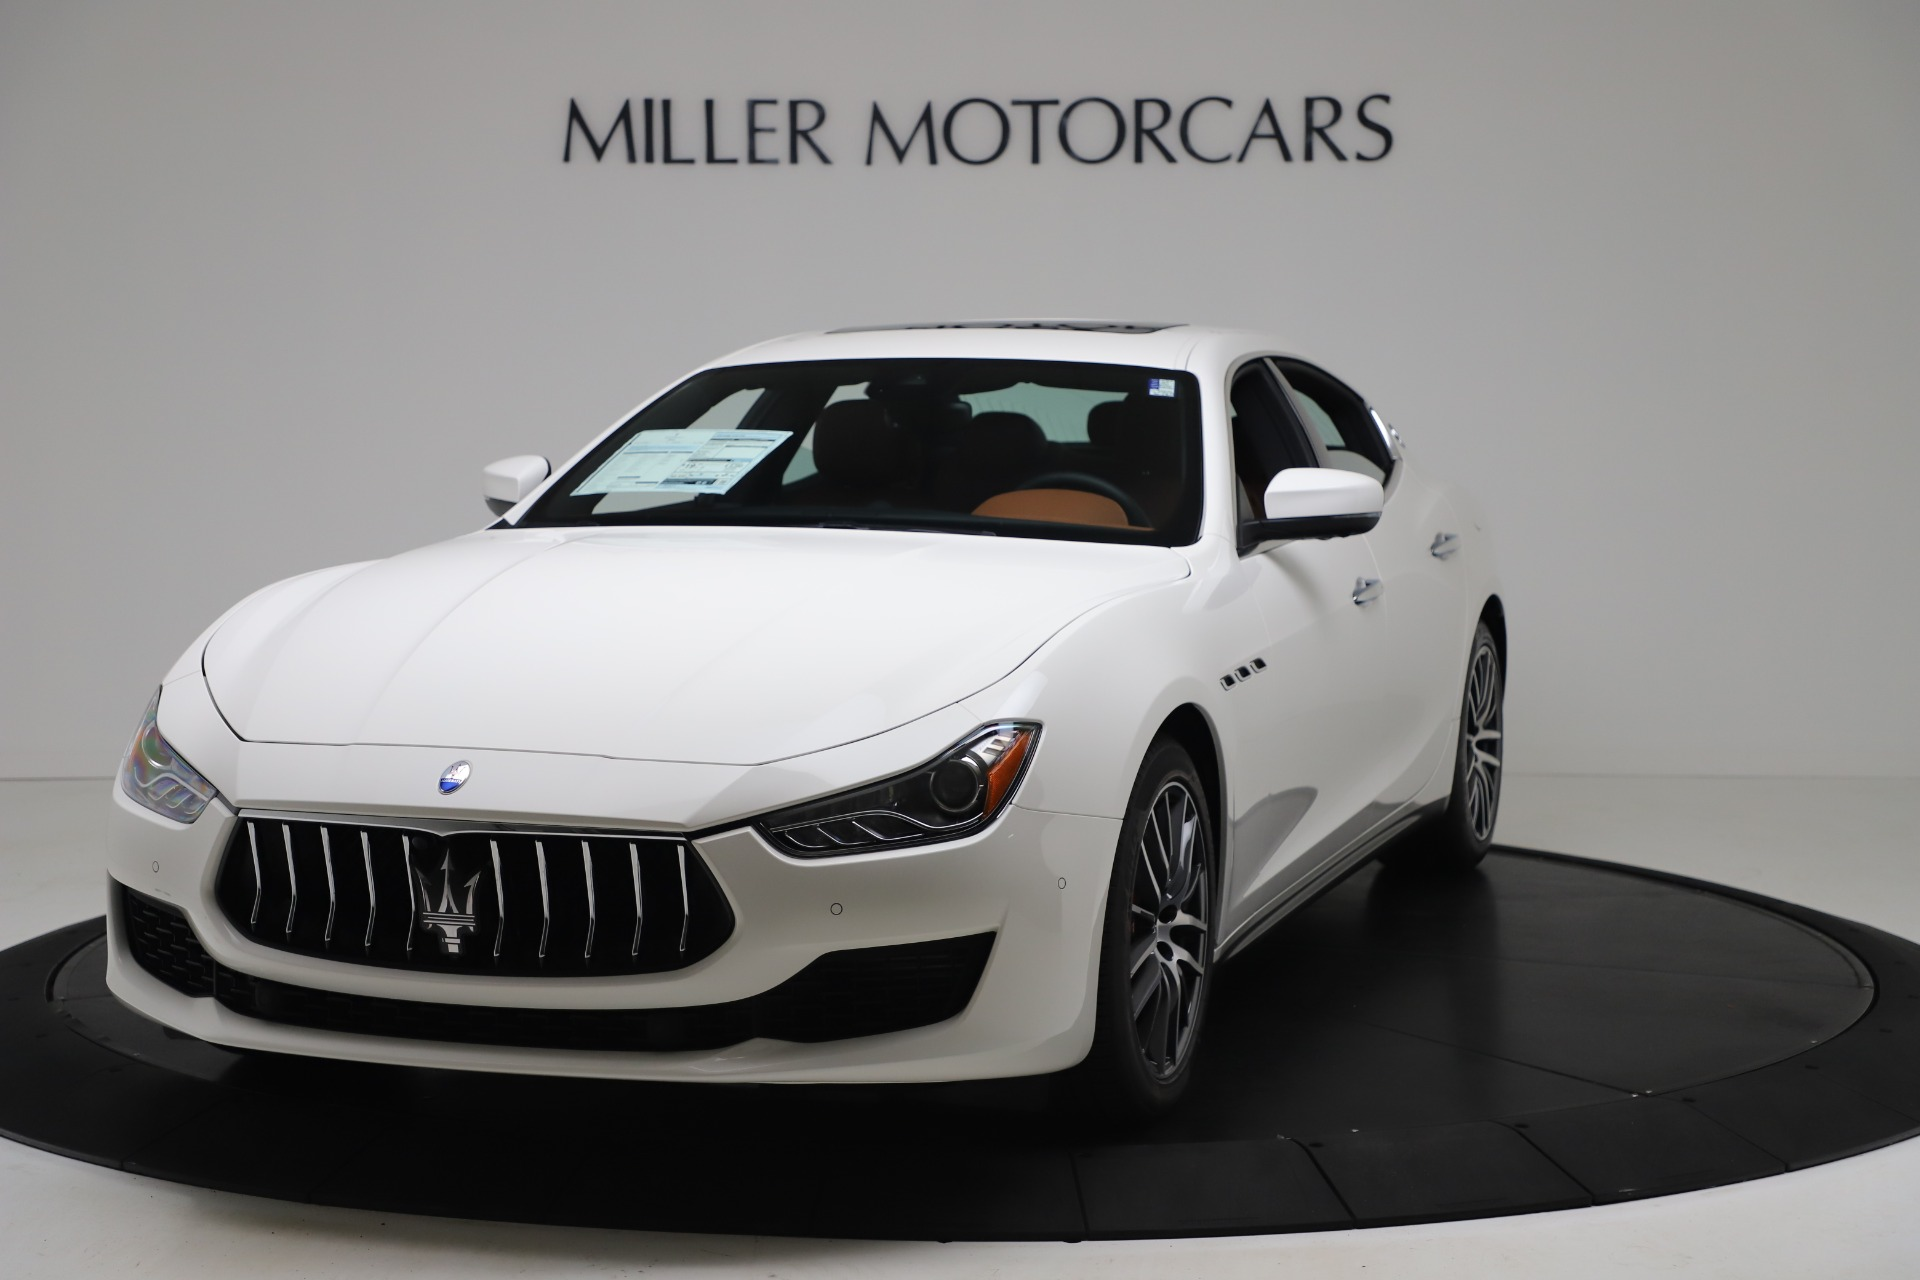 New 2020 Maserati Ghibli S Q4 for sale $84,735 at Bentley Greenwich in Greenwich CT 06830 1